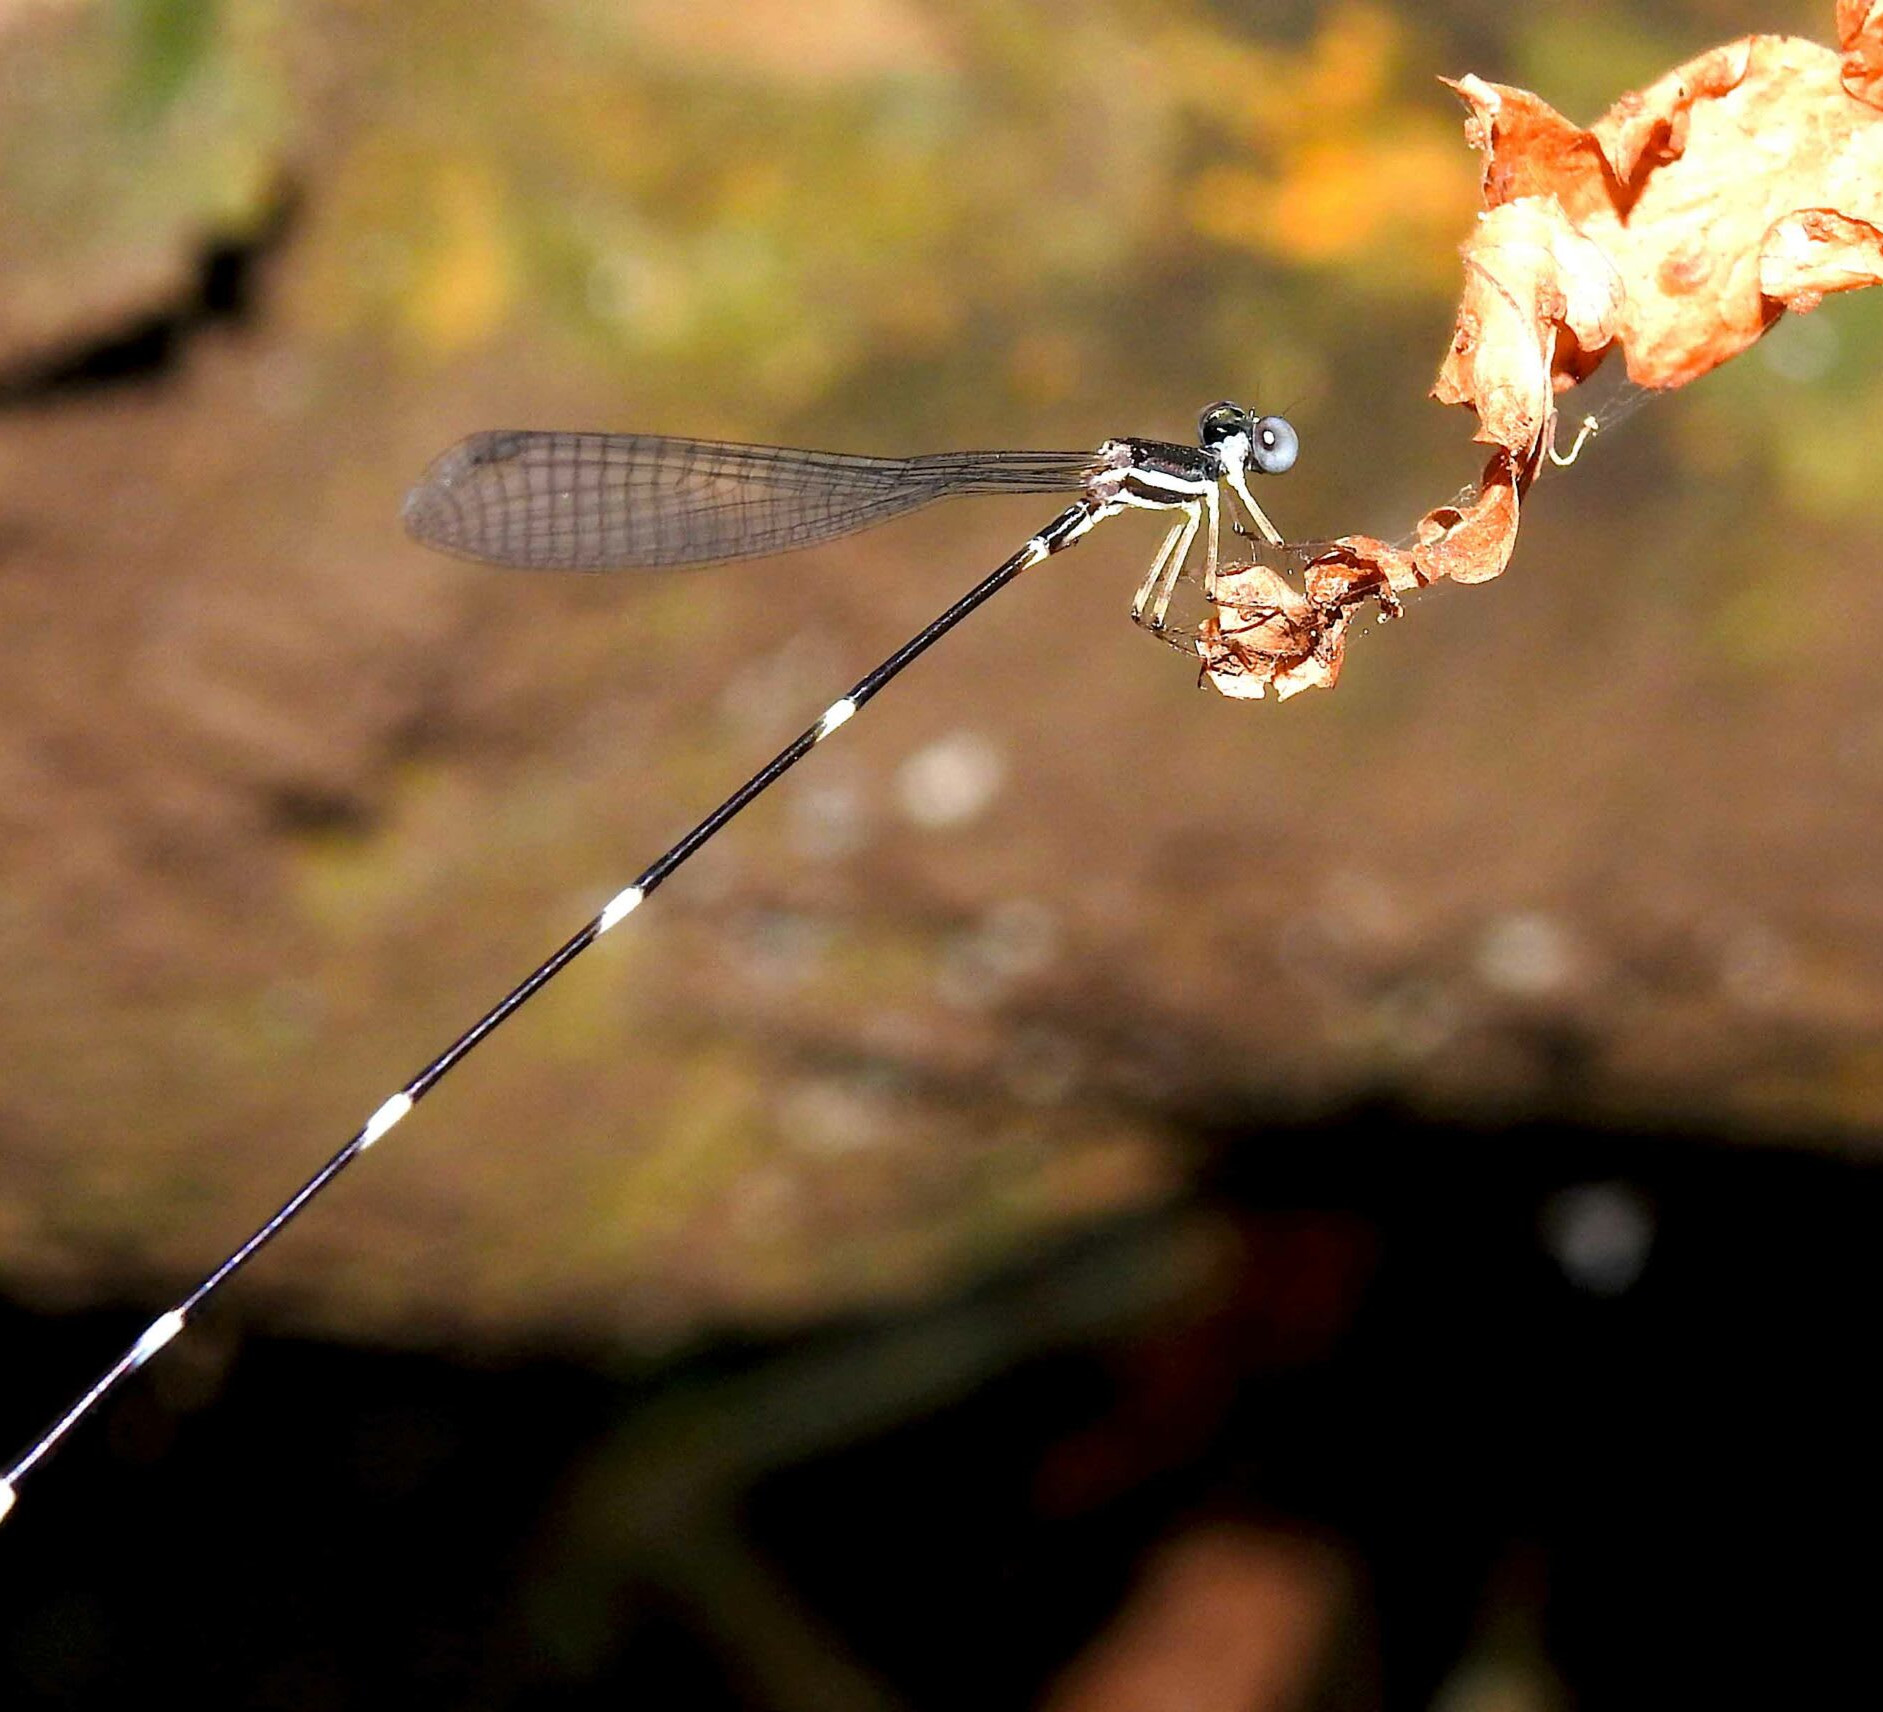 Blue-necked Reedtail: The Mysterious Damselfly